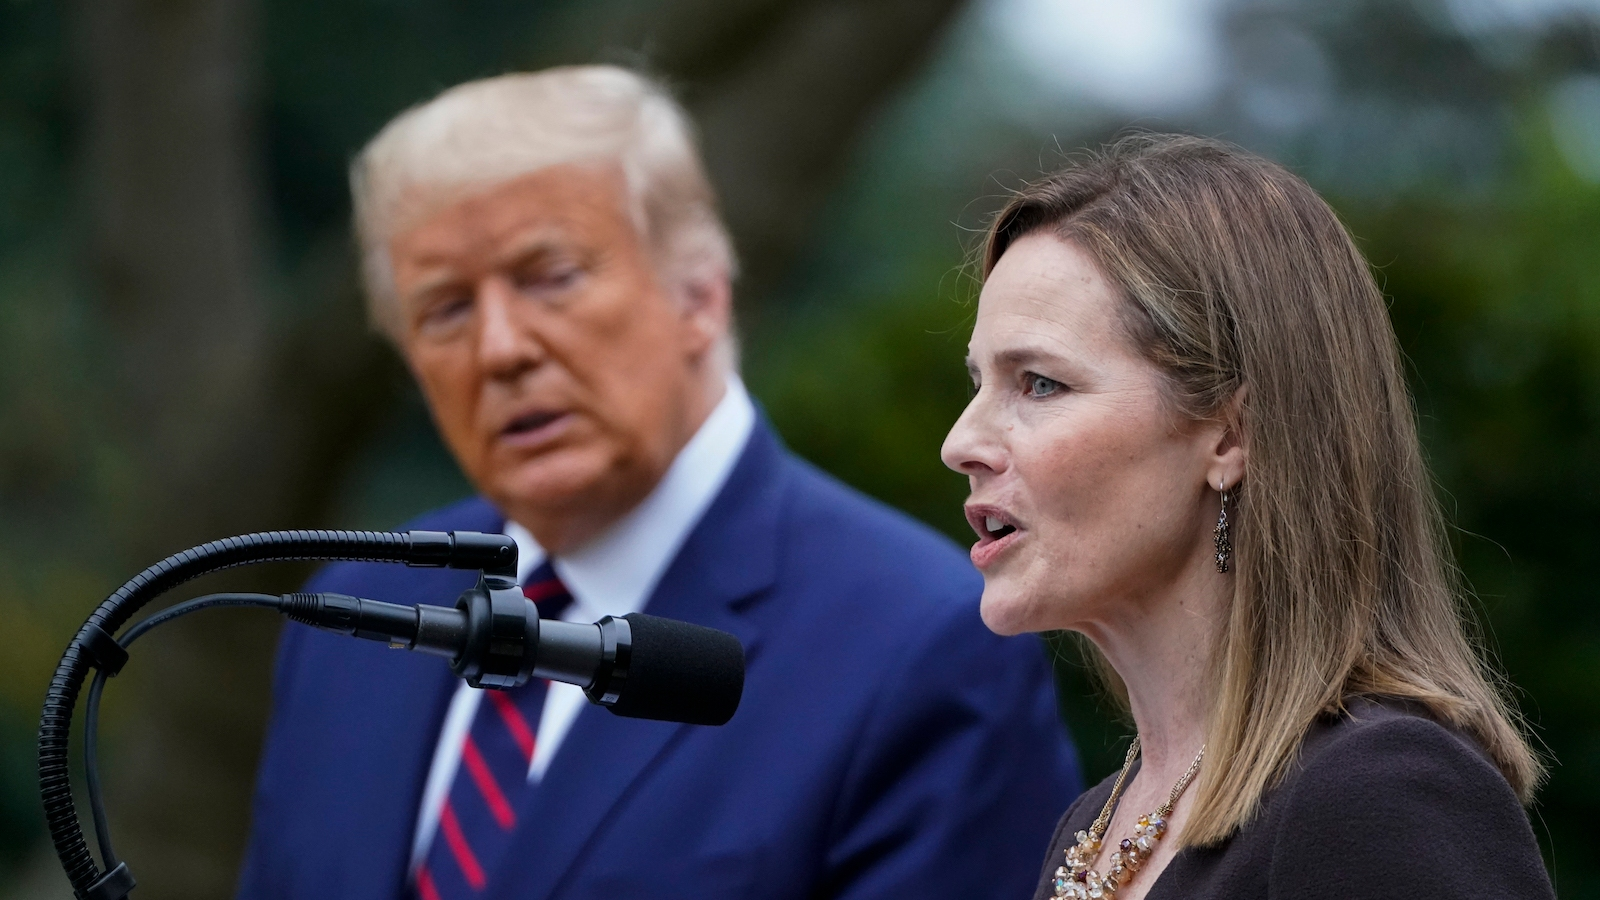 Amy Coney Barrett's environmental track record is sparse, but 'concerning'